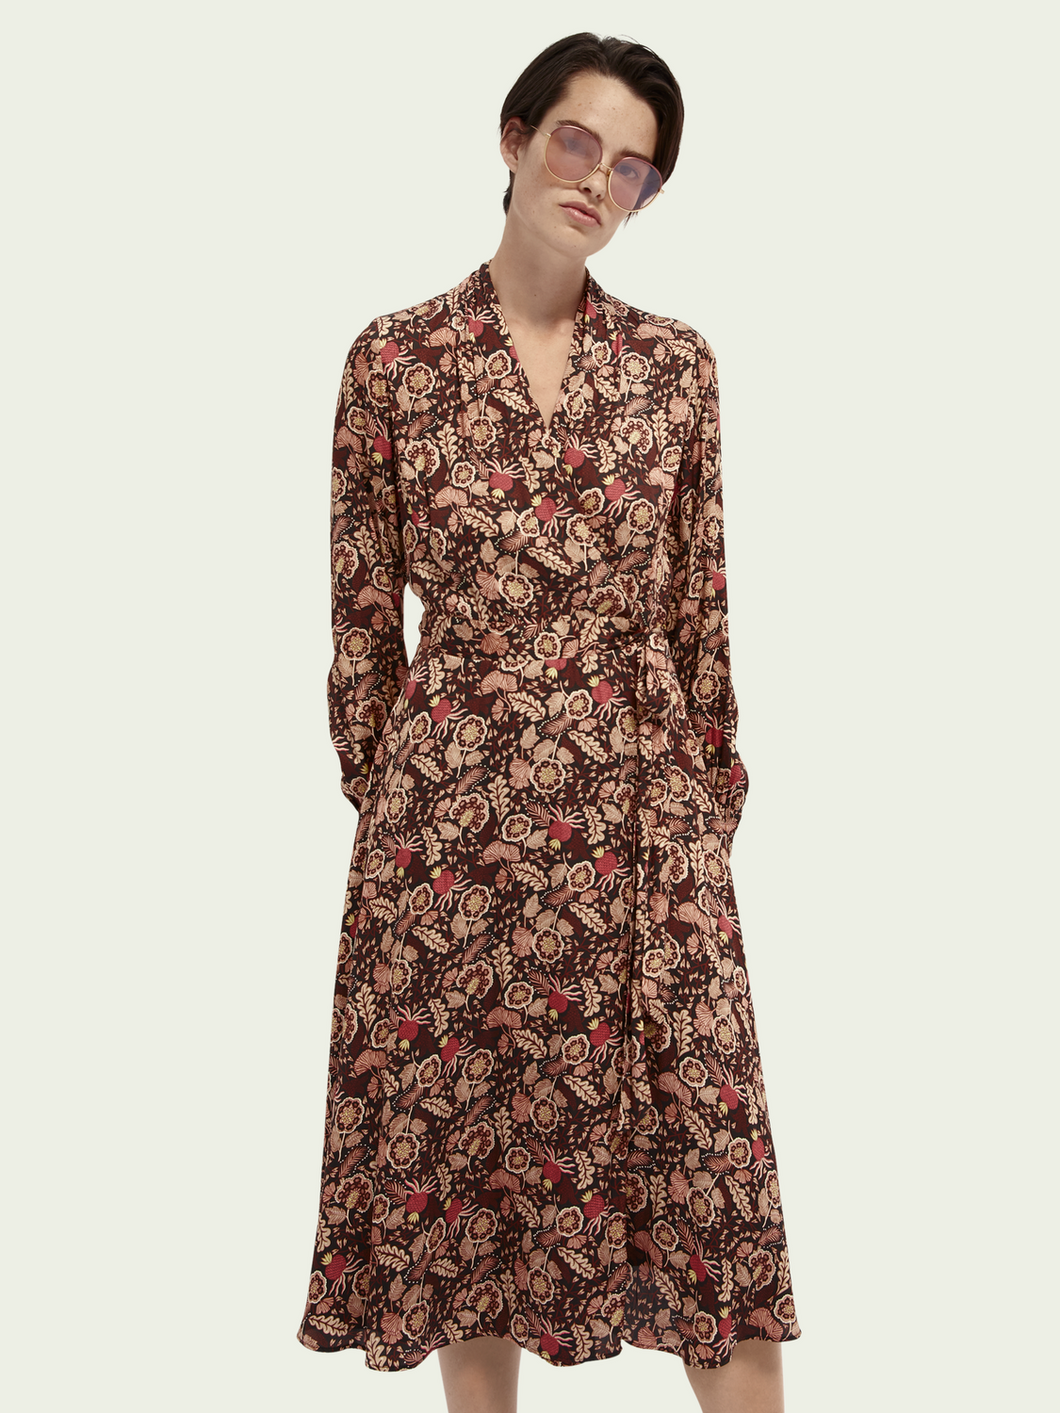 SCOTCH & SODA FLORAL PRINT BELTED MIDI WRAP DRESS